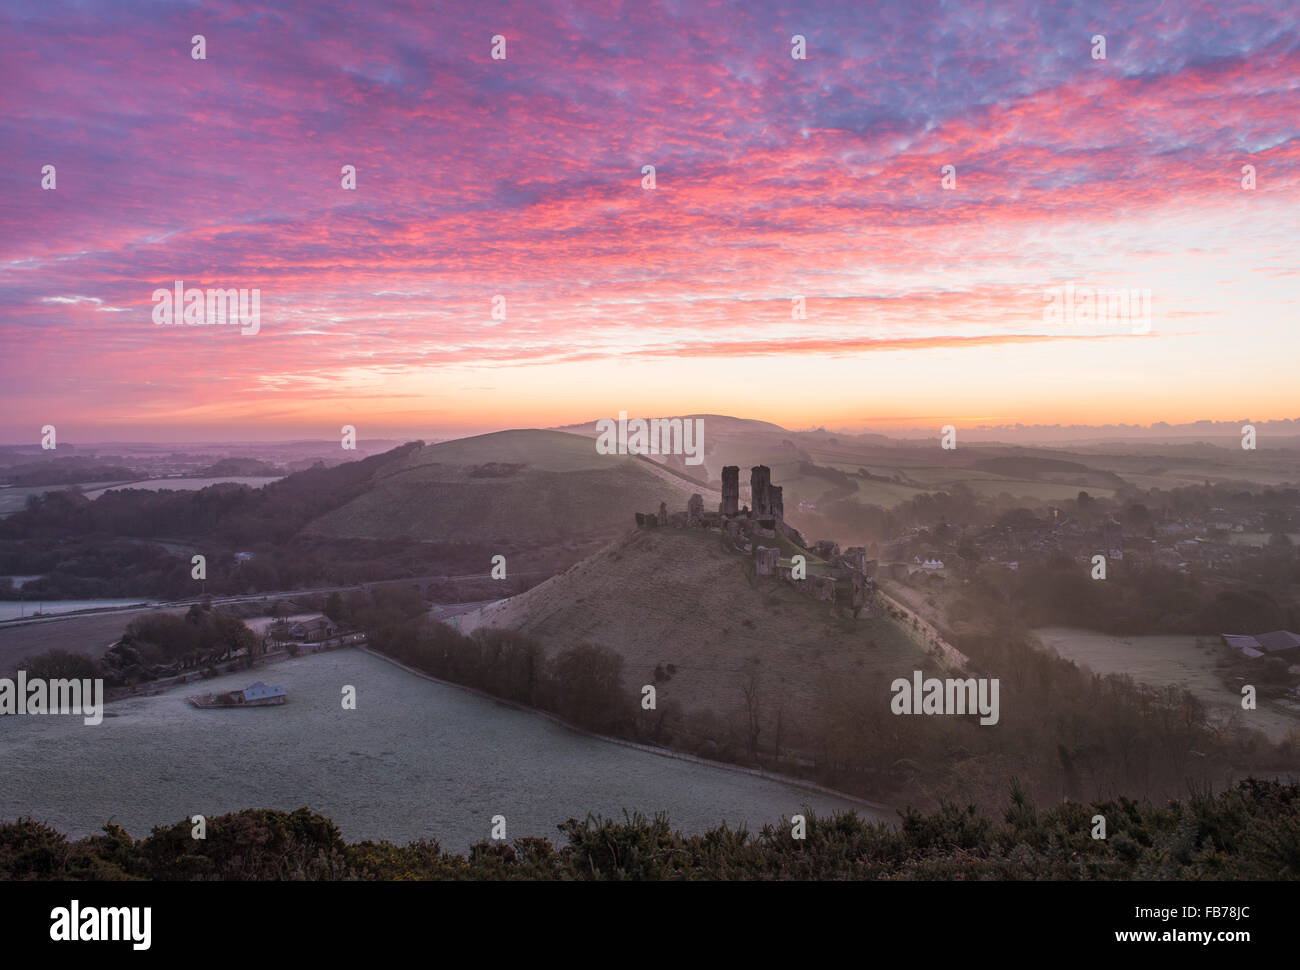 A view over Corfe Castle in Dorset. - Stock Image